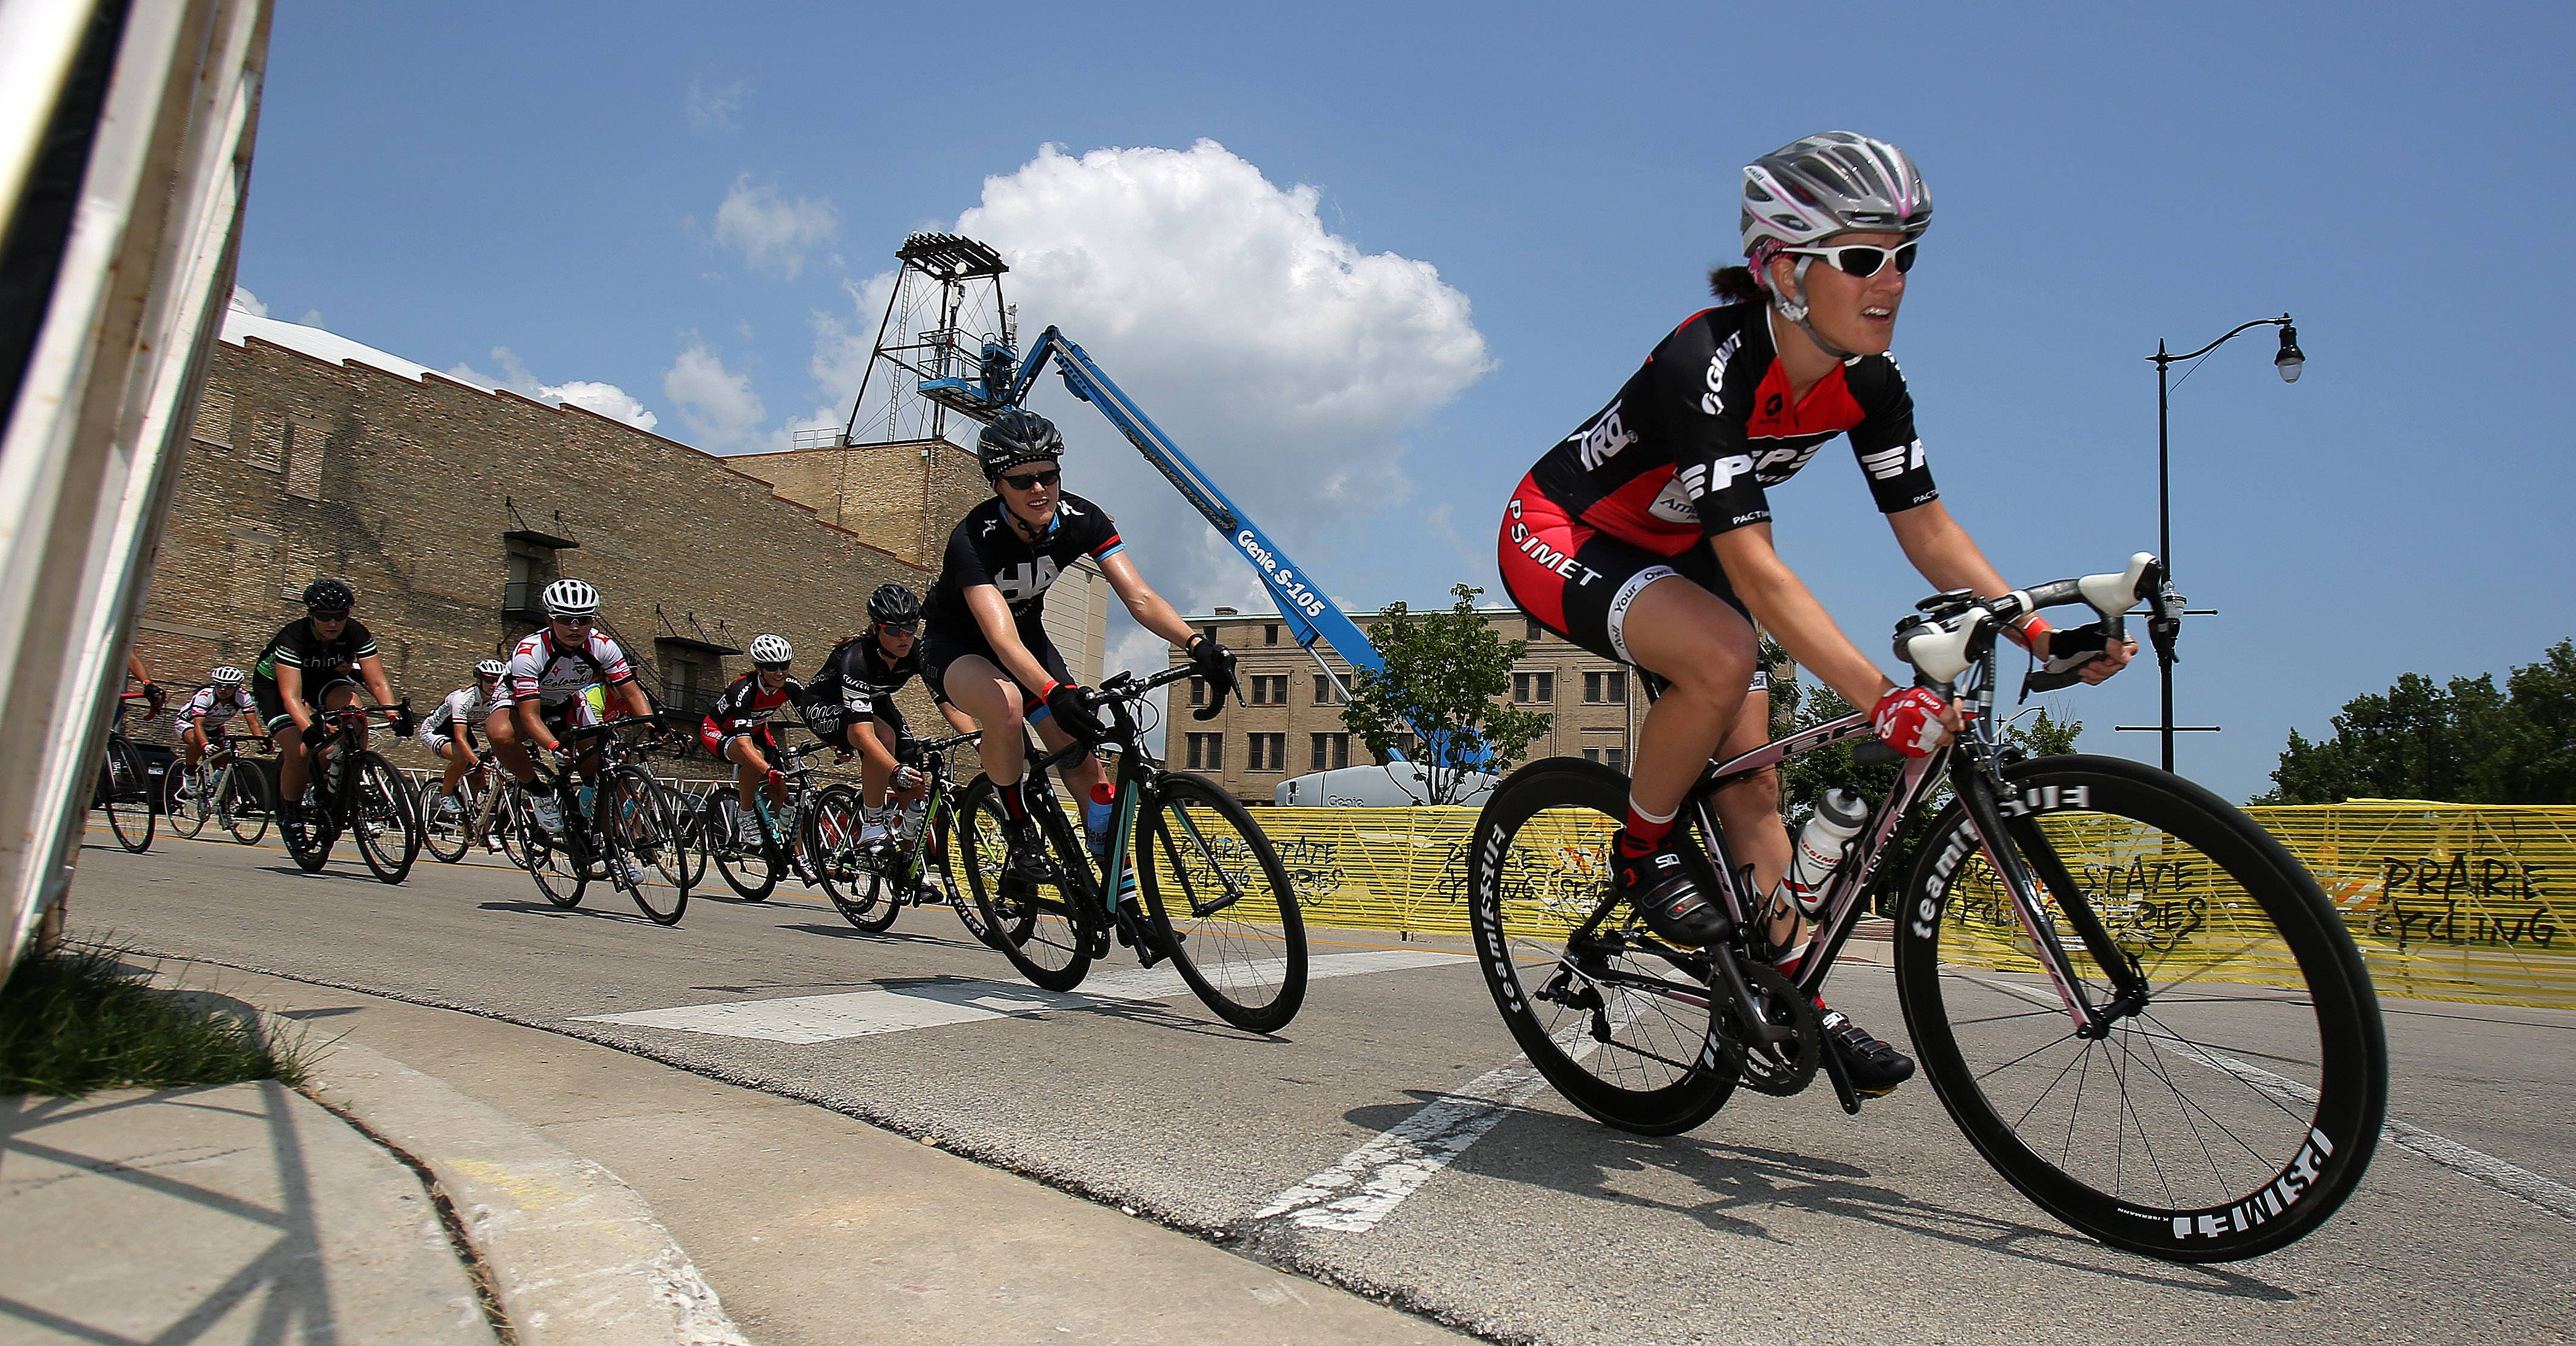 Category 5 women cyclers make their way onto Sheridan Road in downtown Waukegan during the inaugural Vista Health System Waukegan Criterium on Friday.